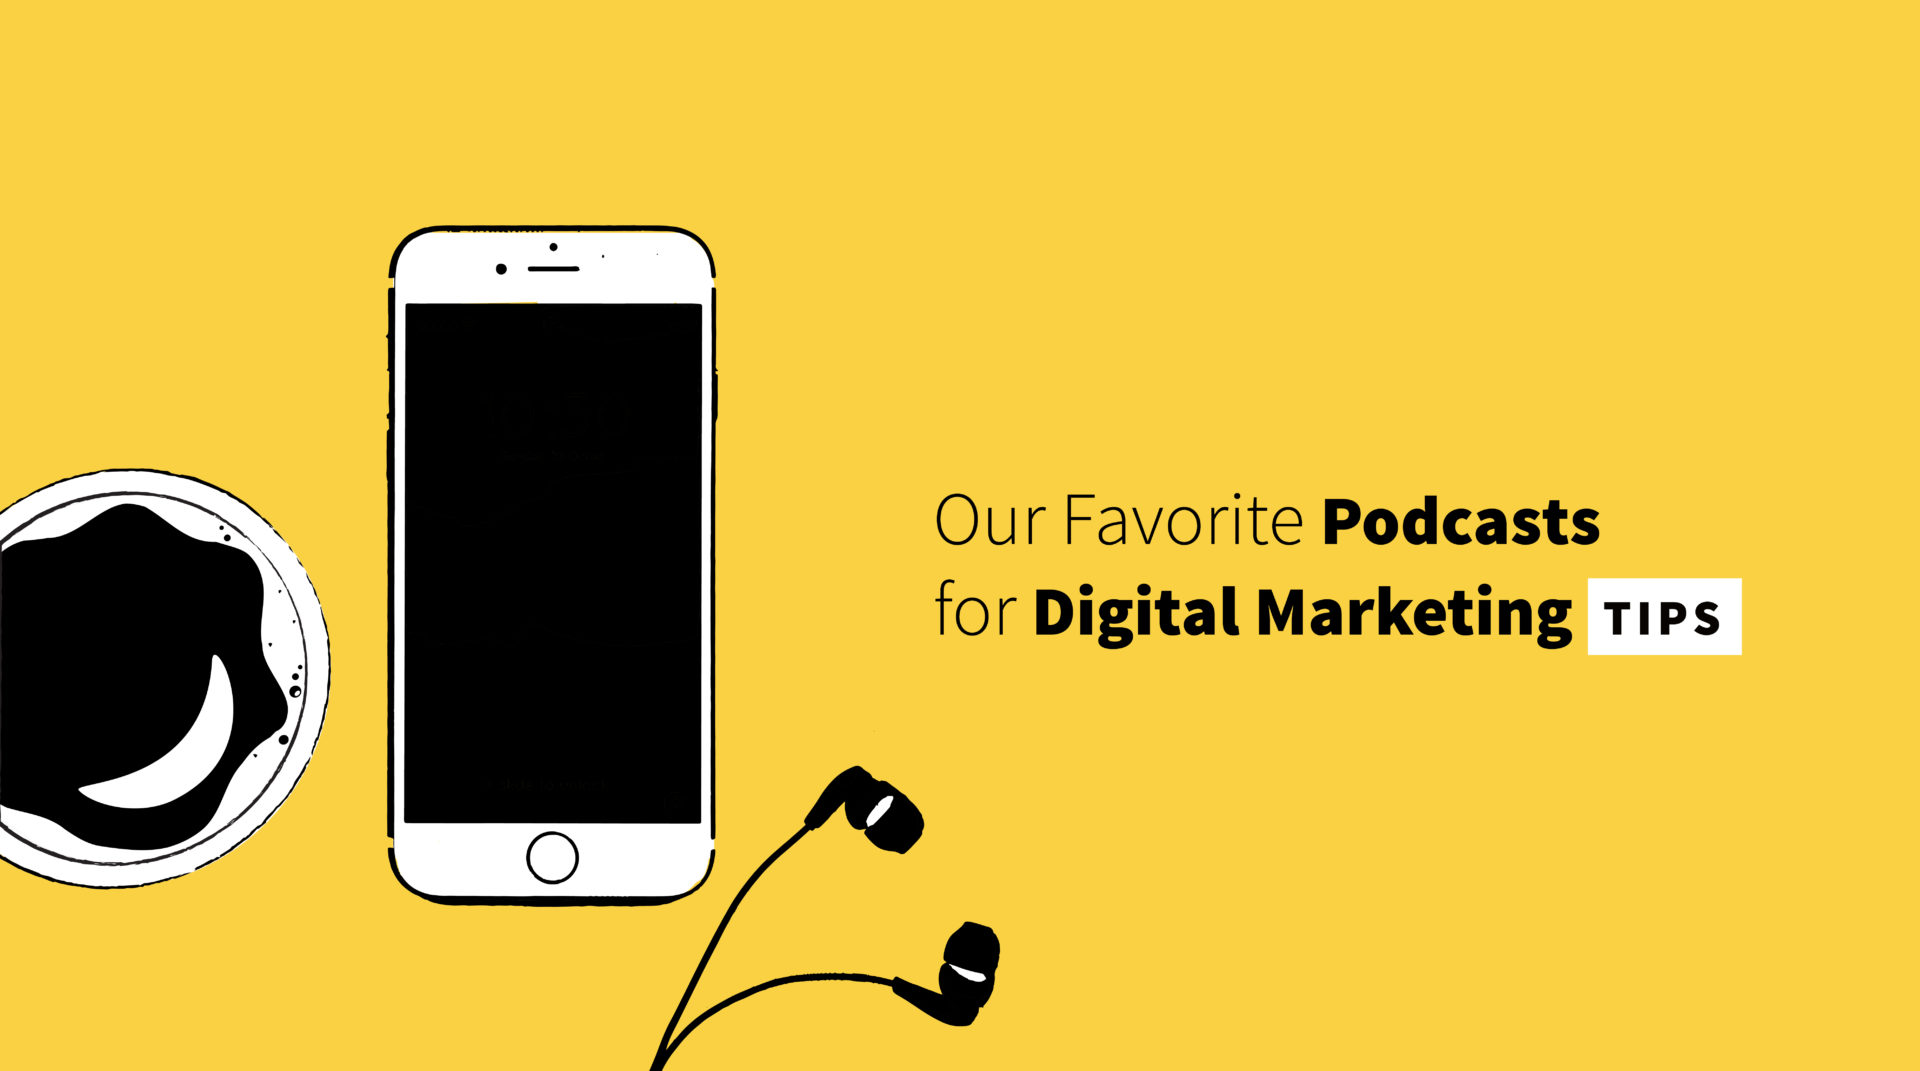 The 5 Best Podcasts for Digital Marketing Tips